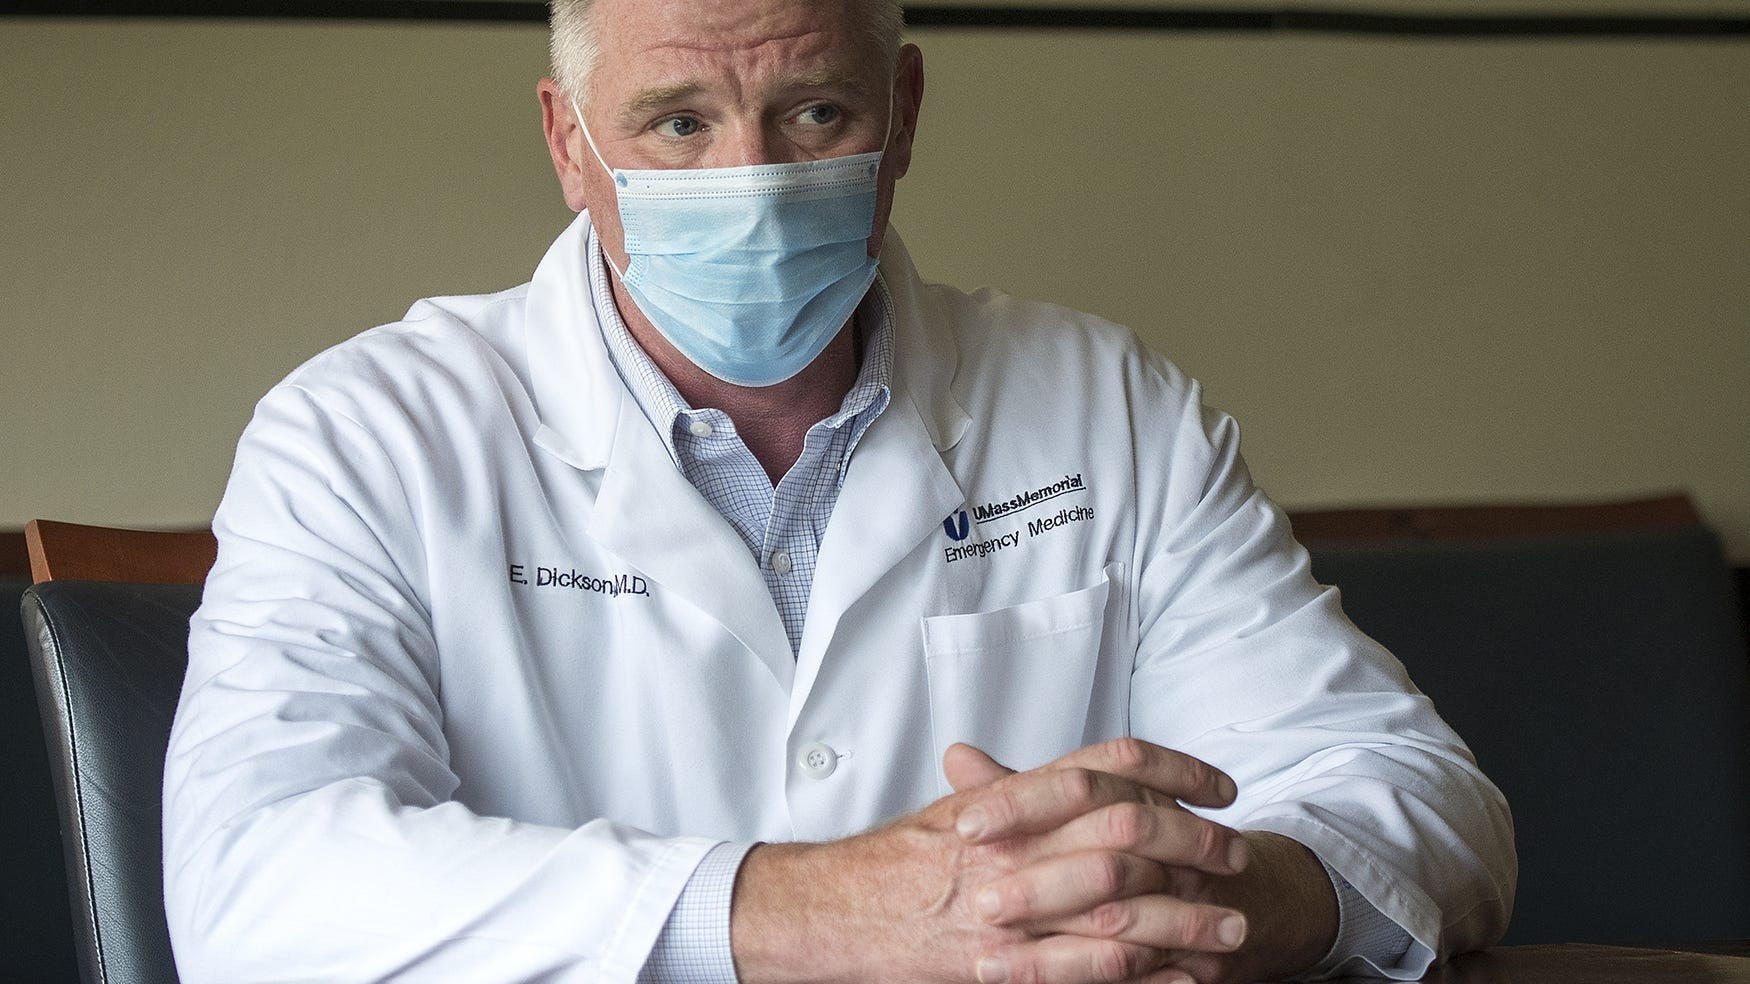 UMass CEO Dr. Eric Dickson Mass General Brigham expansion cost of care